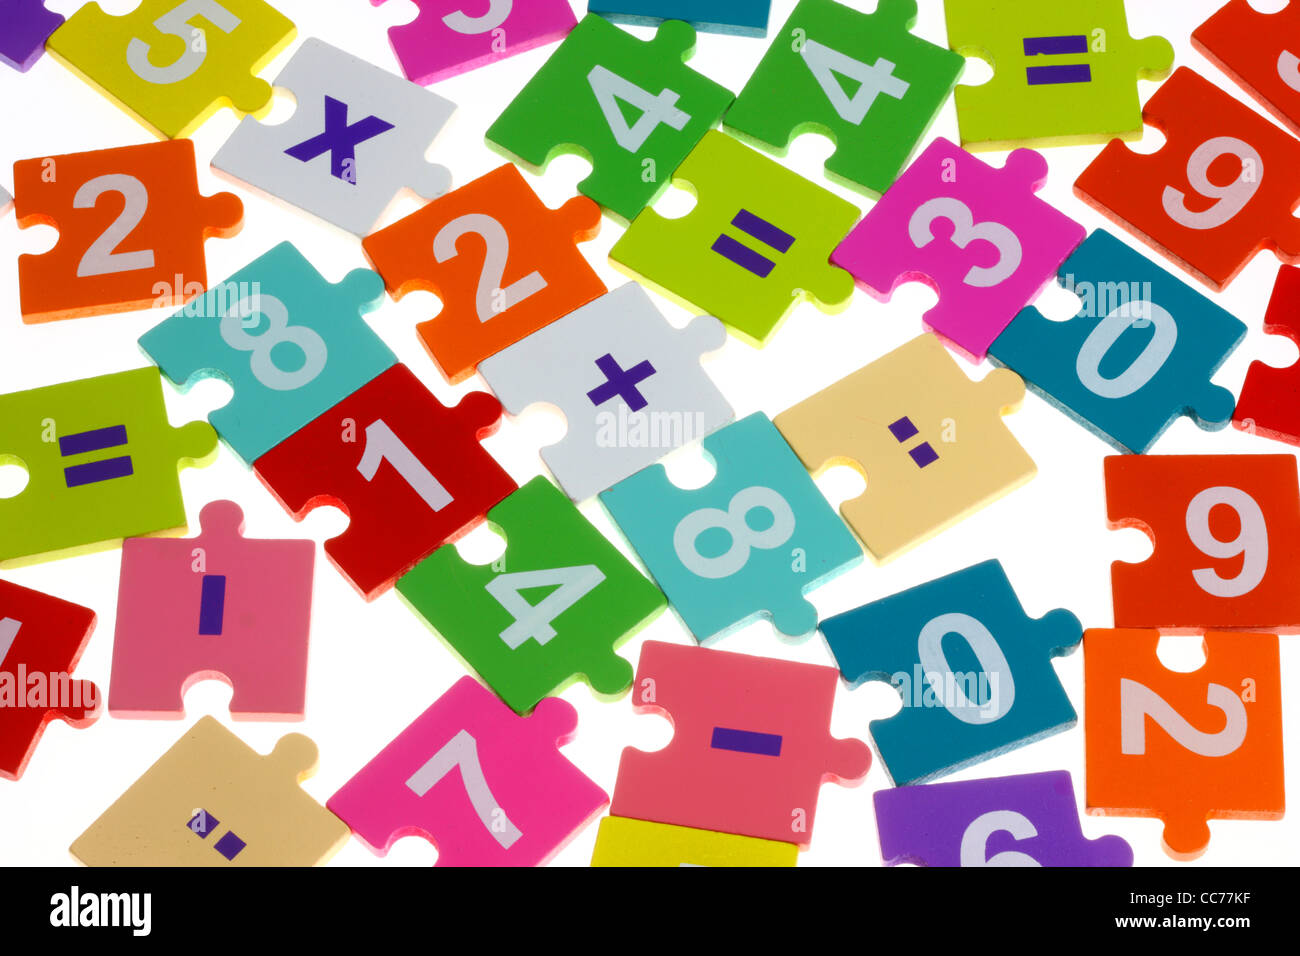 Basic Arithmetic Stock Photos Amp Basic Arithmetic Stock